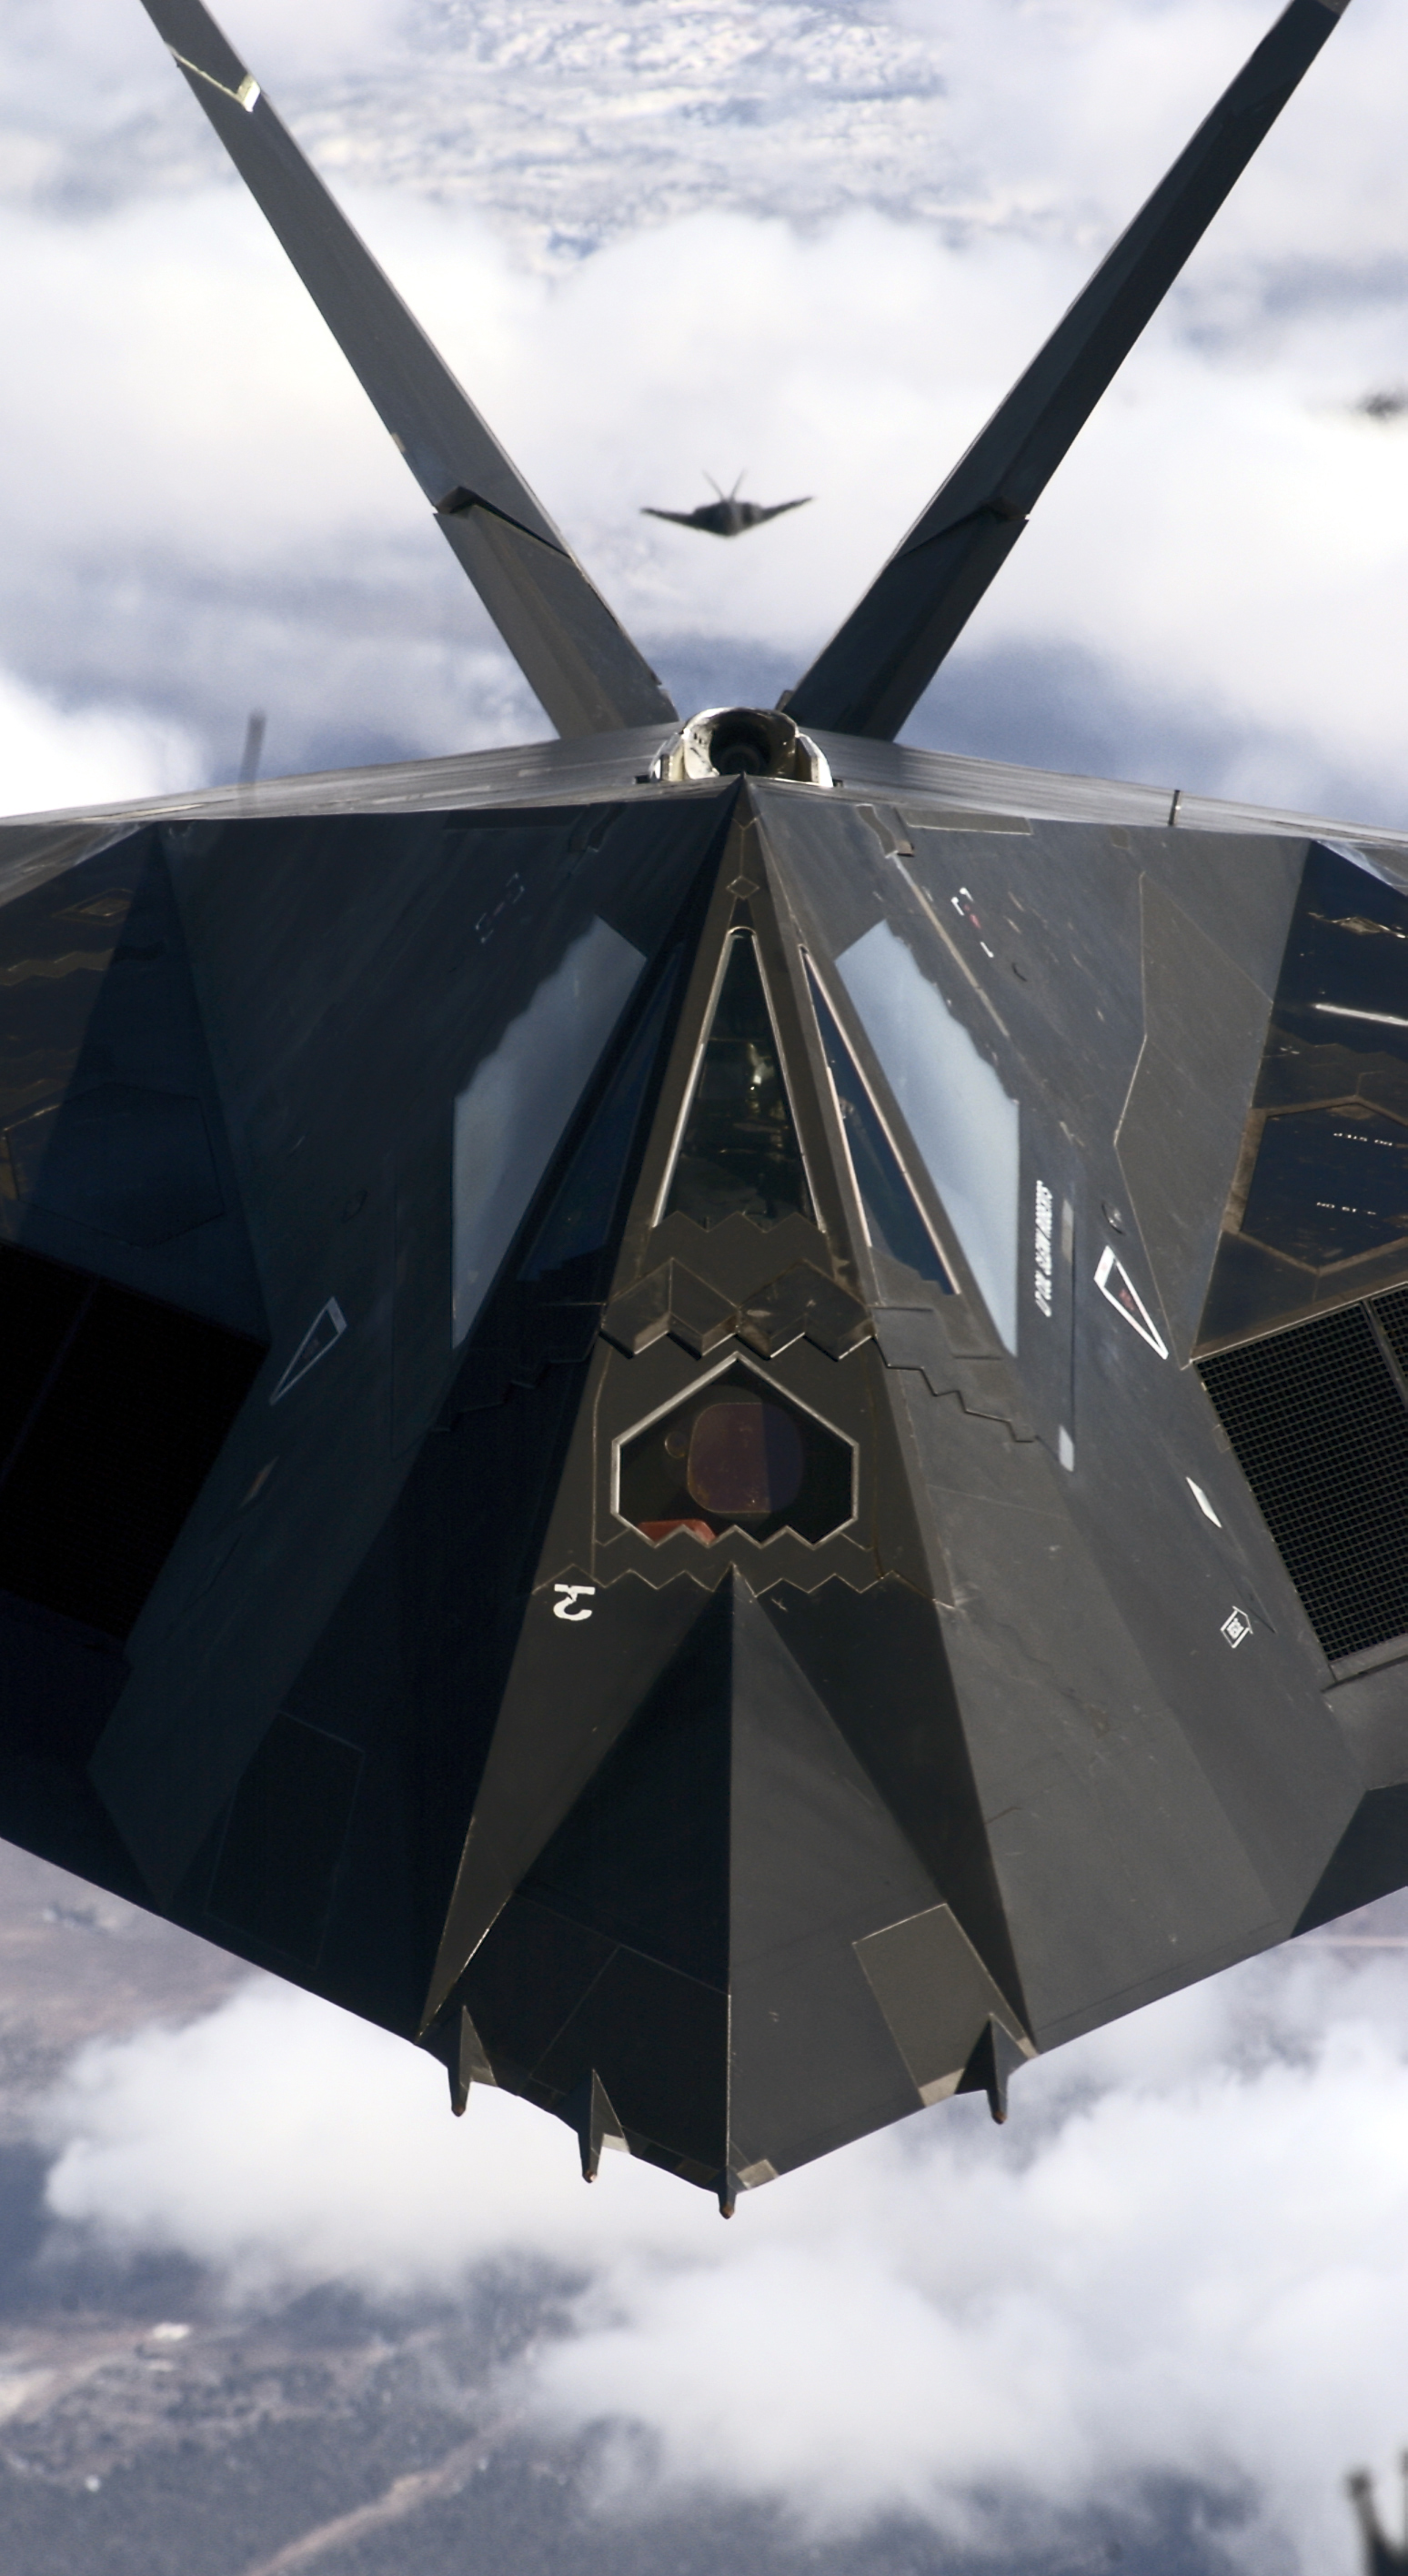 F 117 Stealth Fighter Cockpit WHY IS THE STEALTHY F-...